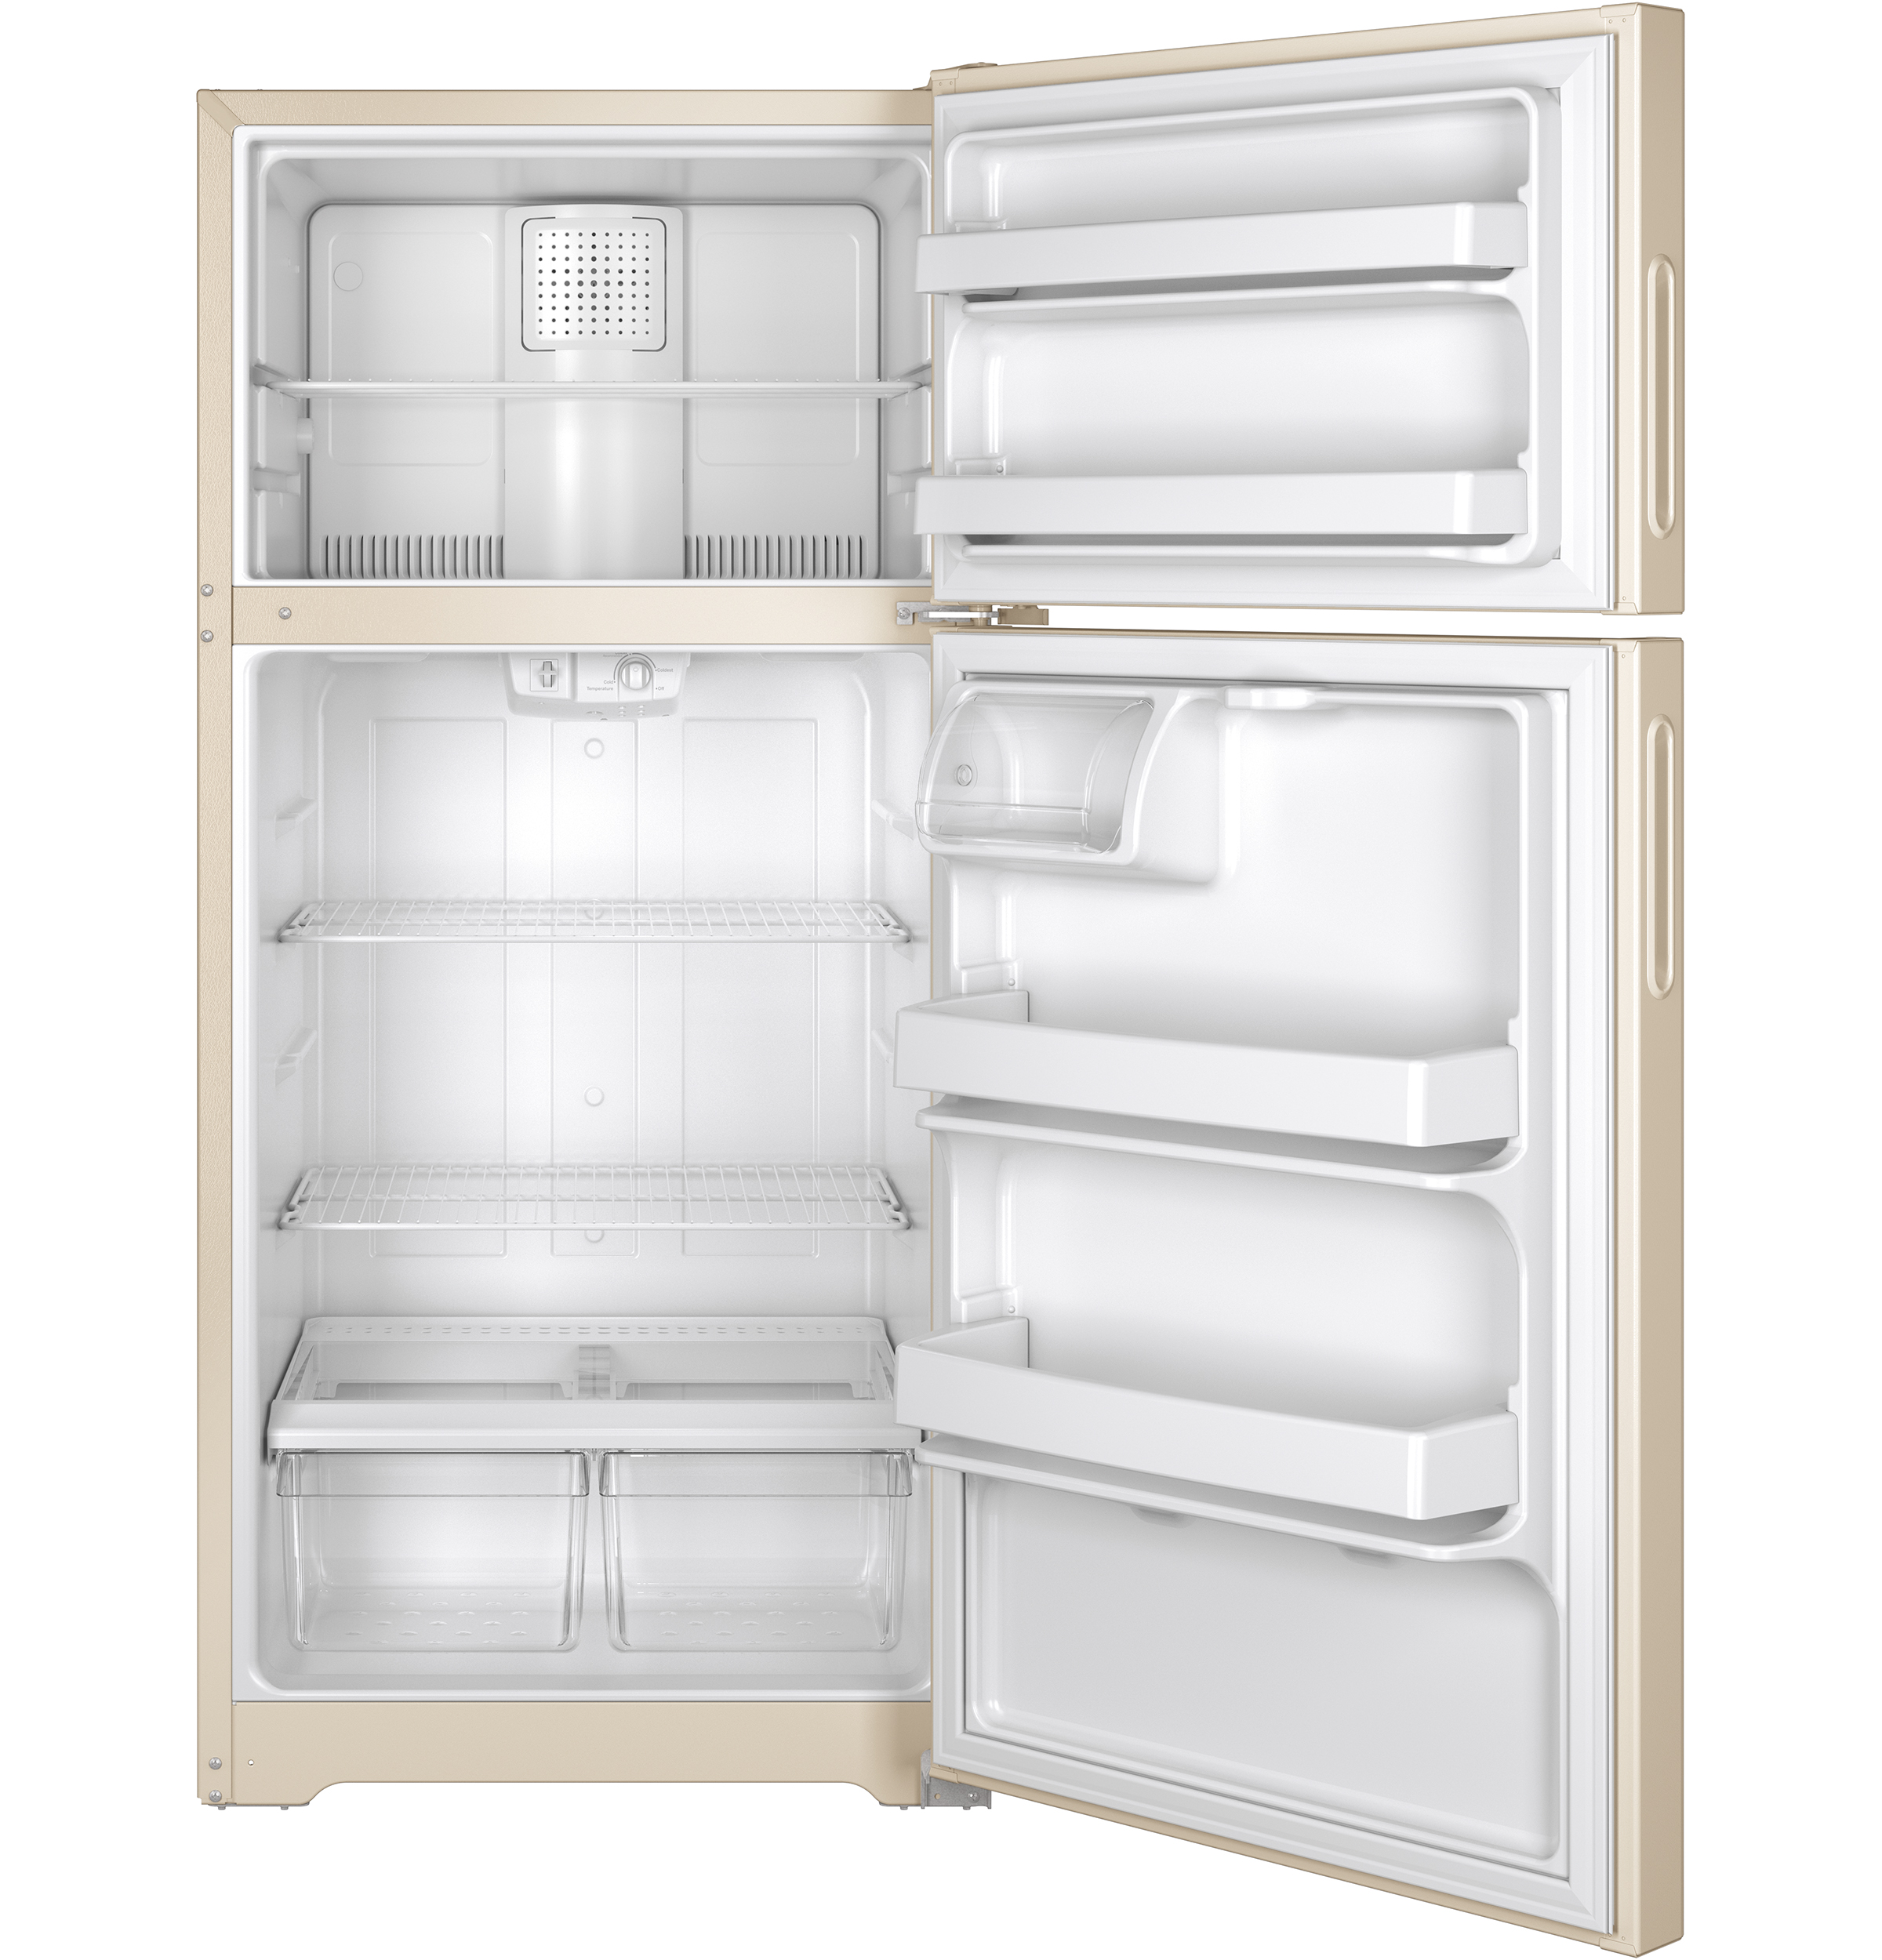 Model: HPS15BTHRCC | Hotpoint® 14.6 Cu. Ft. Recessed Handle Top-Freezer Refrigerator